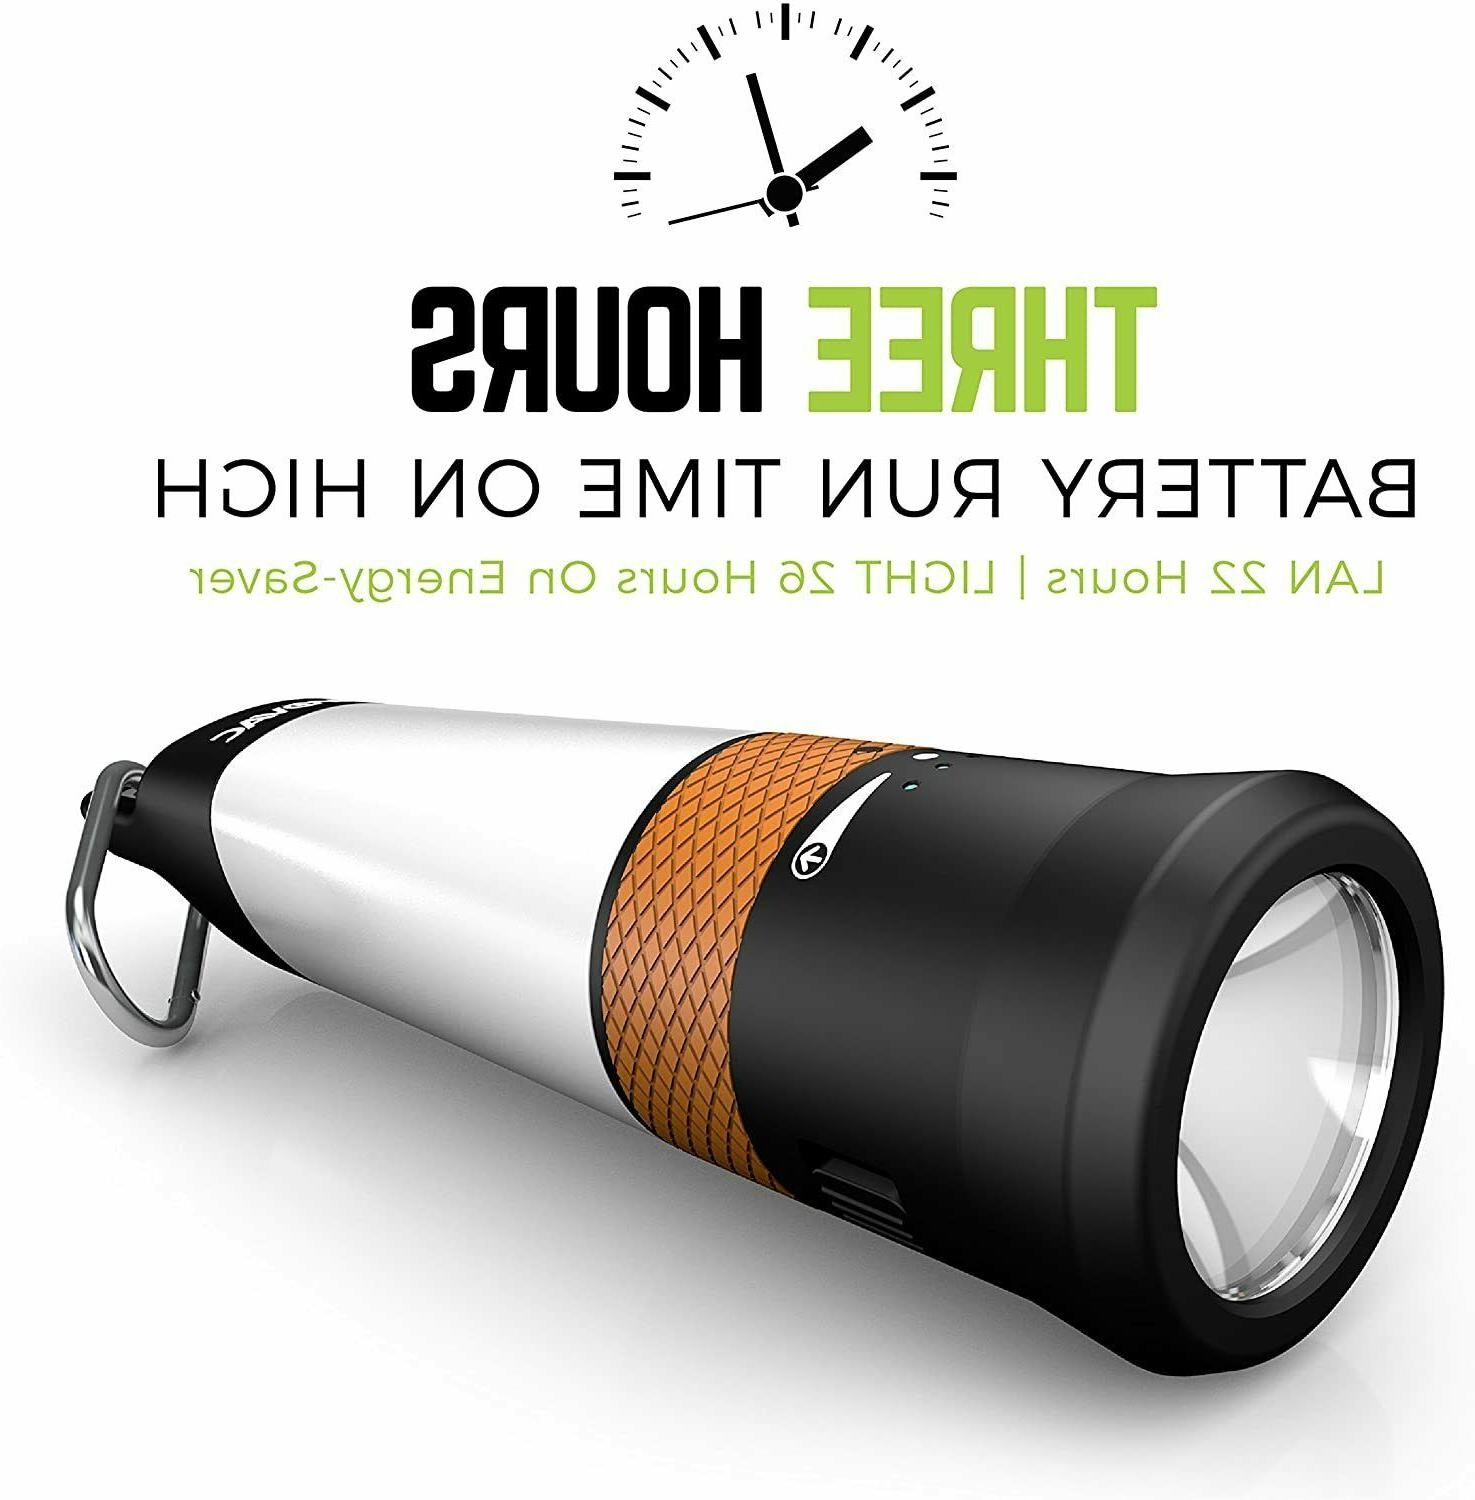 Rayovac Pathfinder Portable Lantern Charger Outdoor